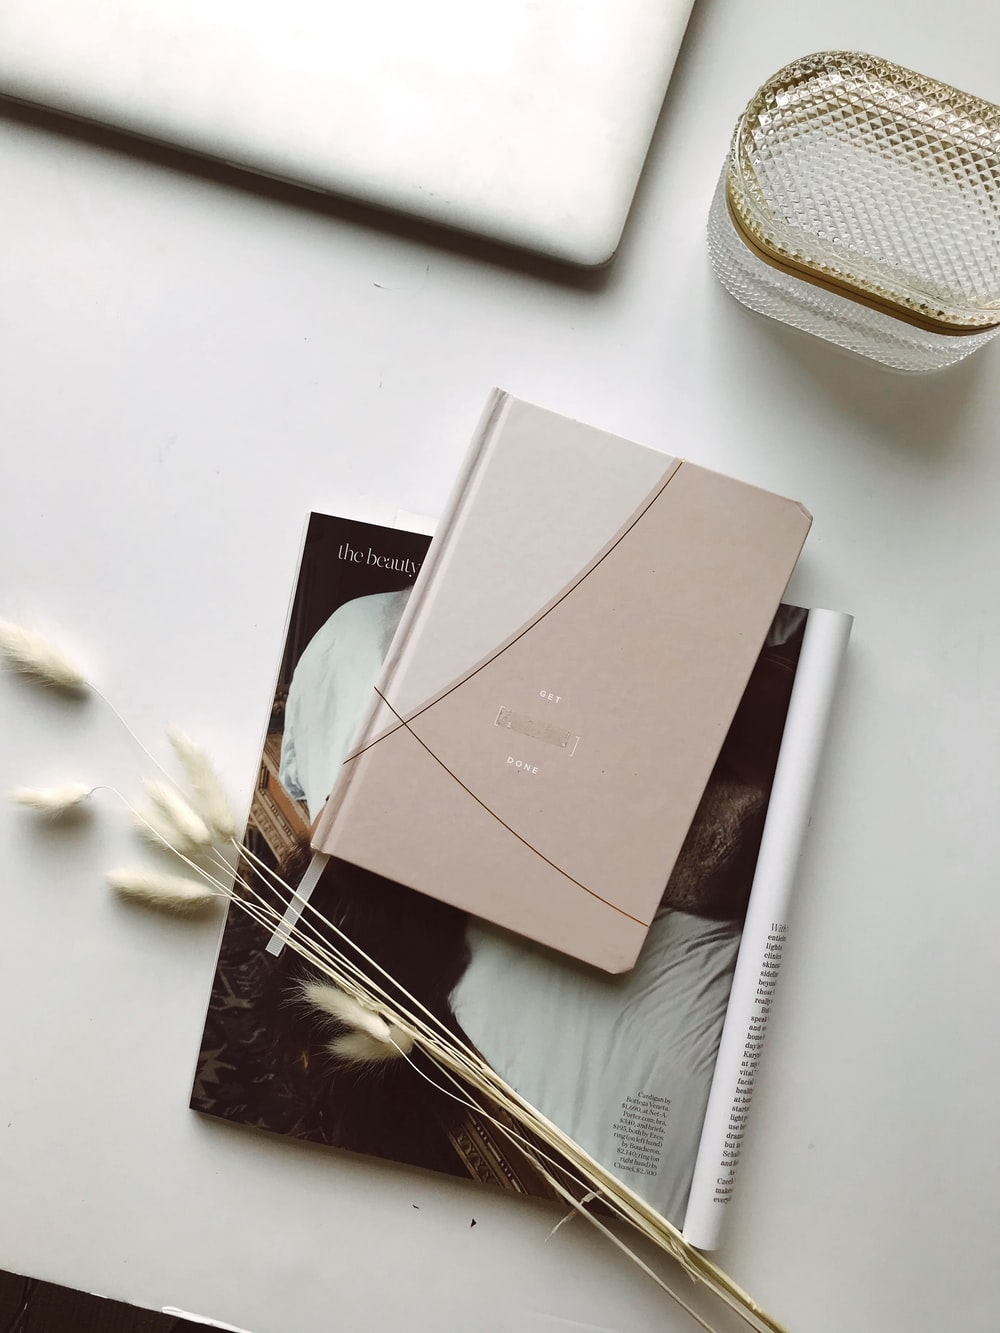 titled book on white surface